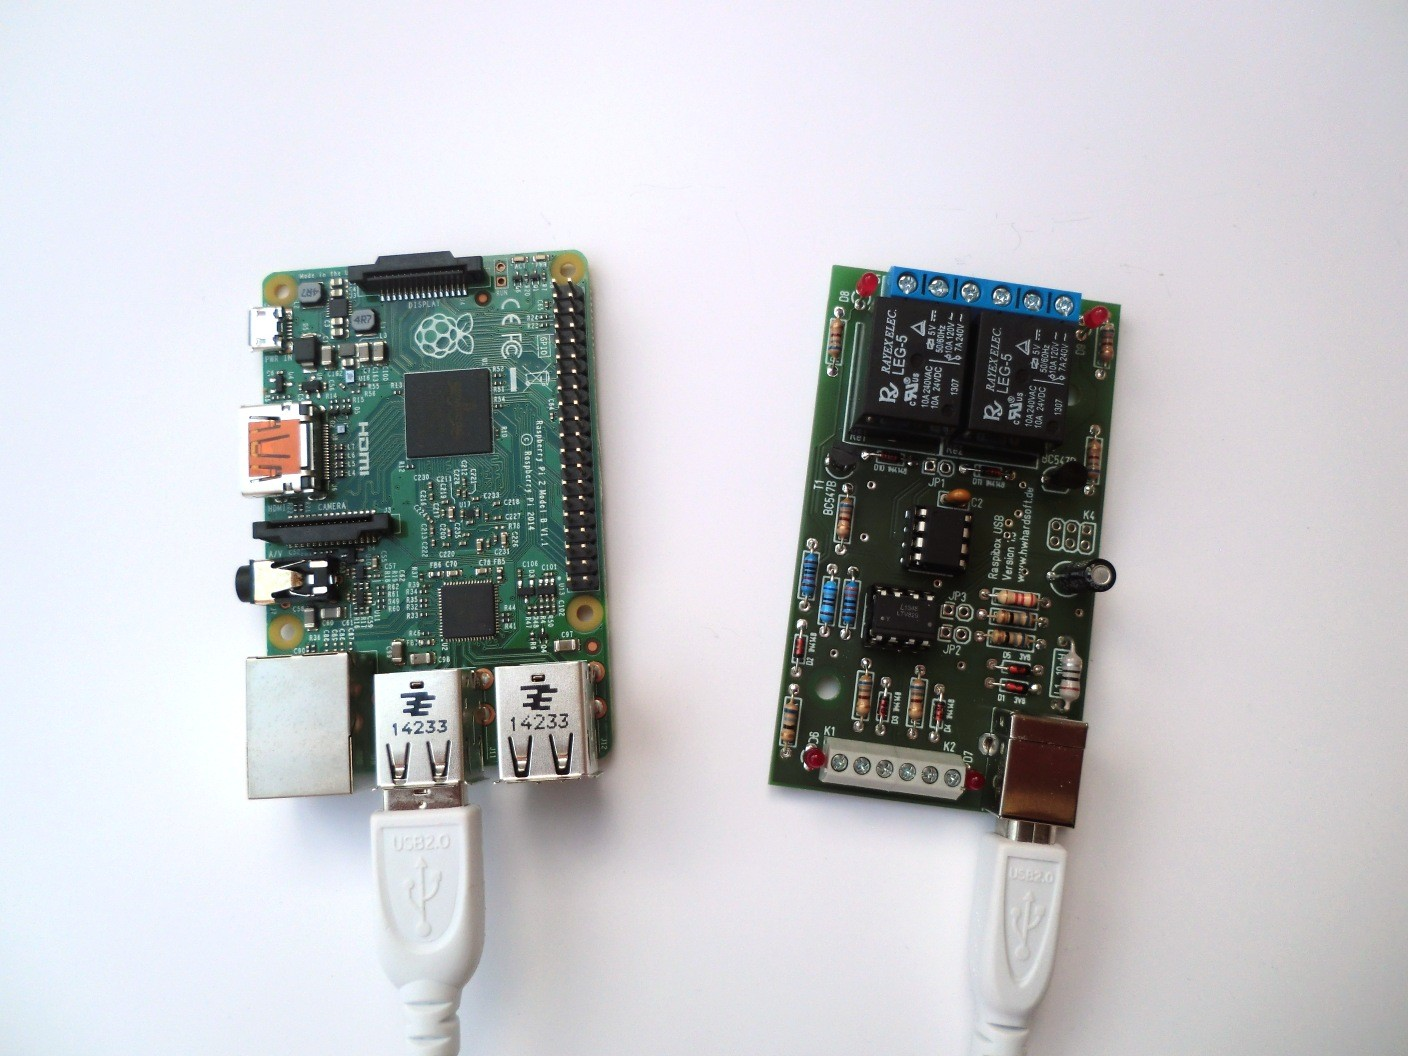 Simplibox Io Accessories For Raspberry Pi And Arduino Usb Controller Schematic Combined With